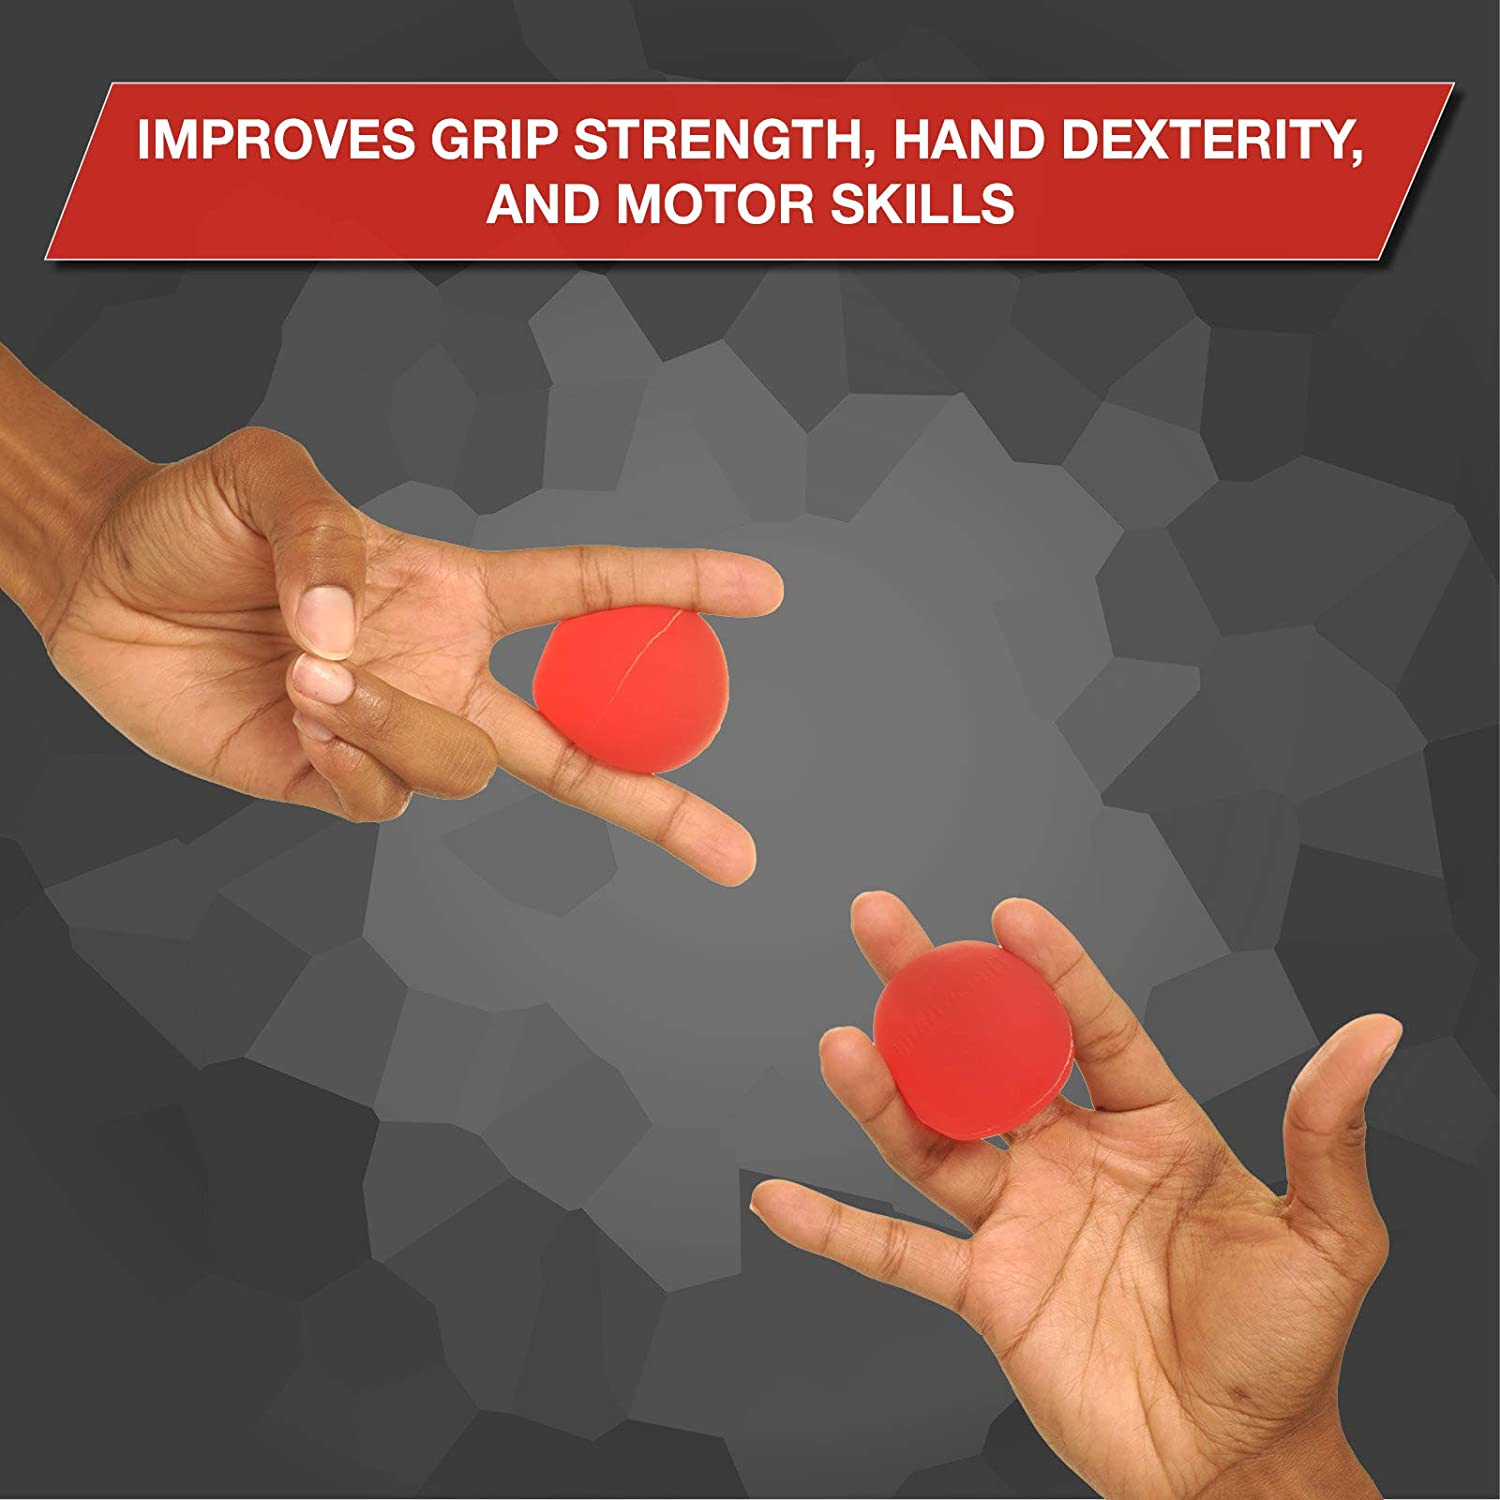 Finger Wrist Grip Strengthening /& Therapy Squeeze Ball to Increase Hand Flexibility /& Relieve Joint Pain Stress Ball for Hand Forearm X-Large TheraBand Hand Exerciser